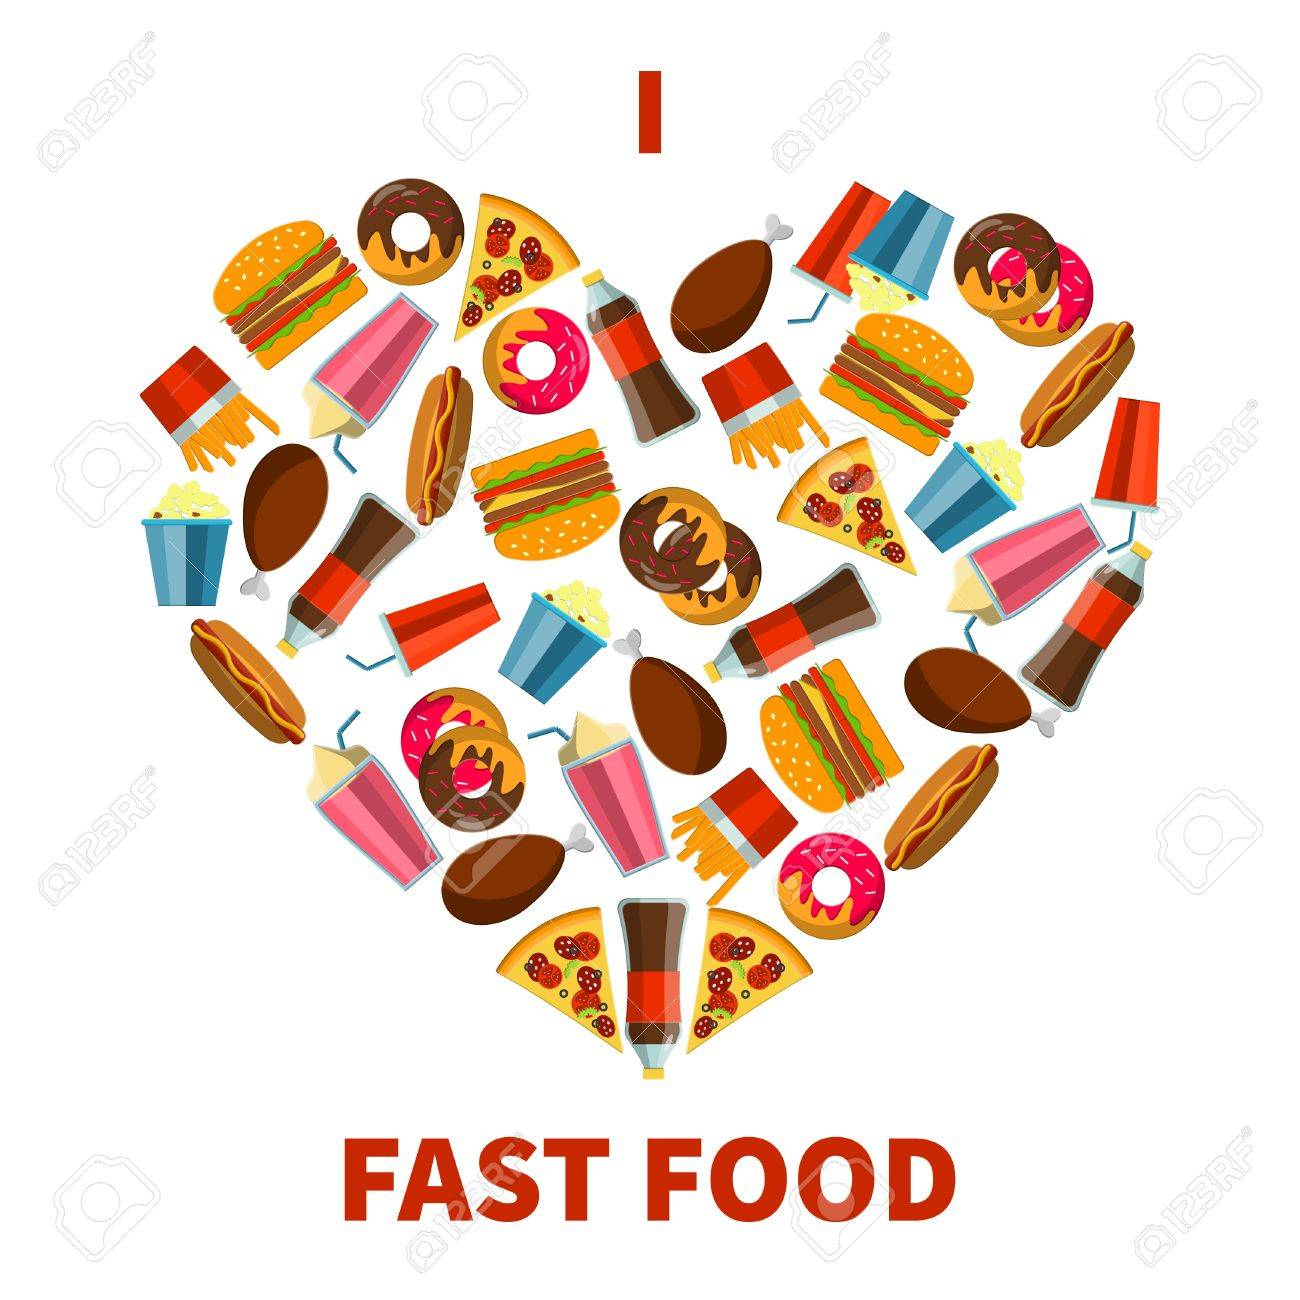 Flat vector illustration of fastfood for design website flat vector illustration of fastfood for design website background banne fat meal food biocorpaavc